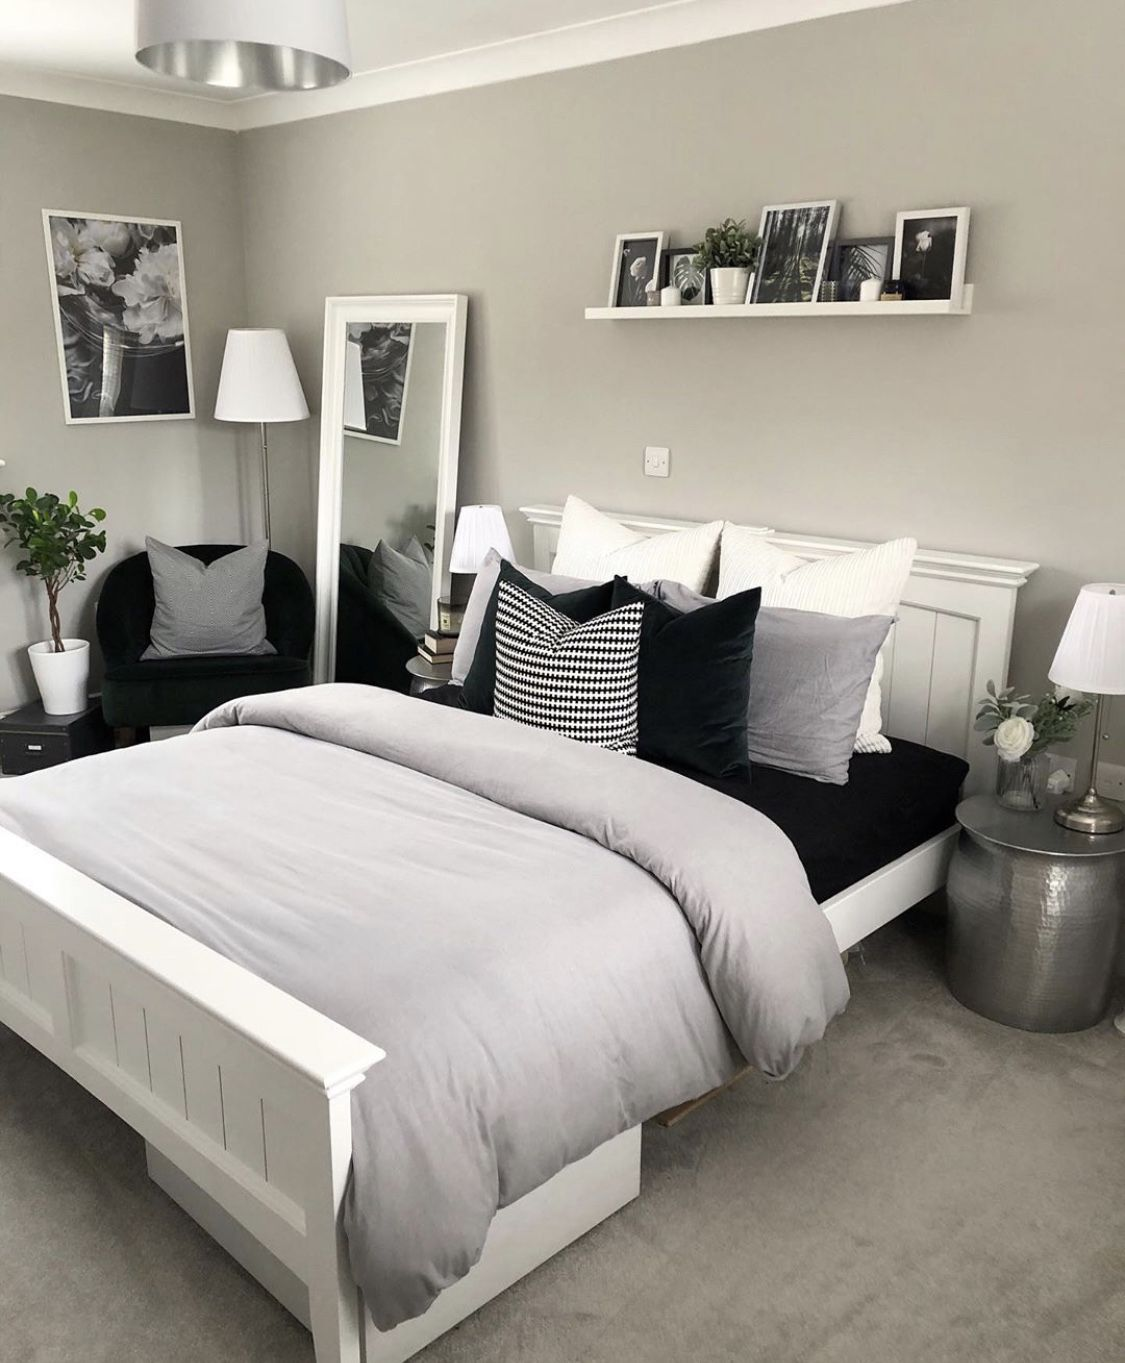 Grey Aesthetic Room Ideas